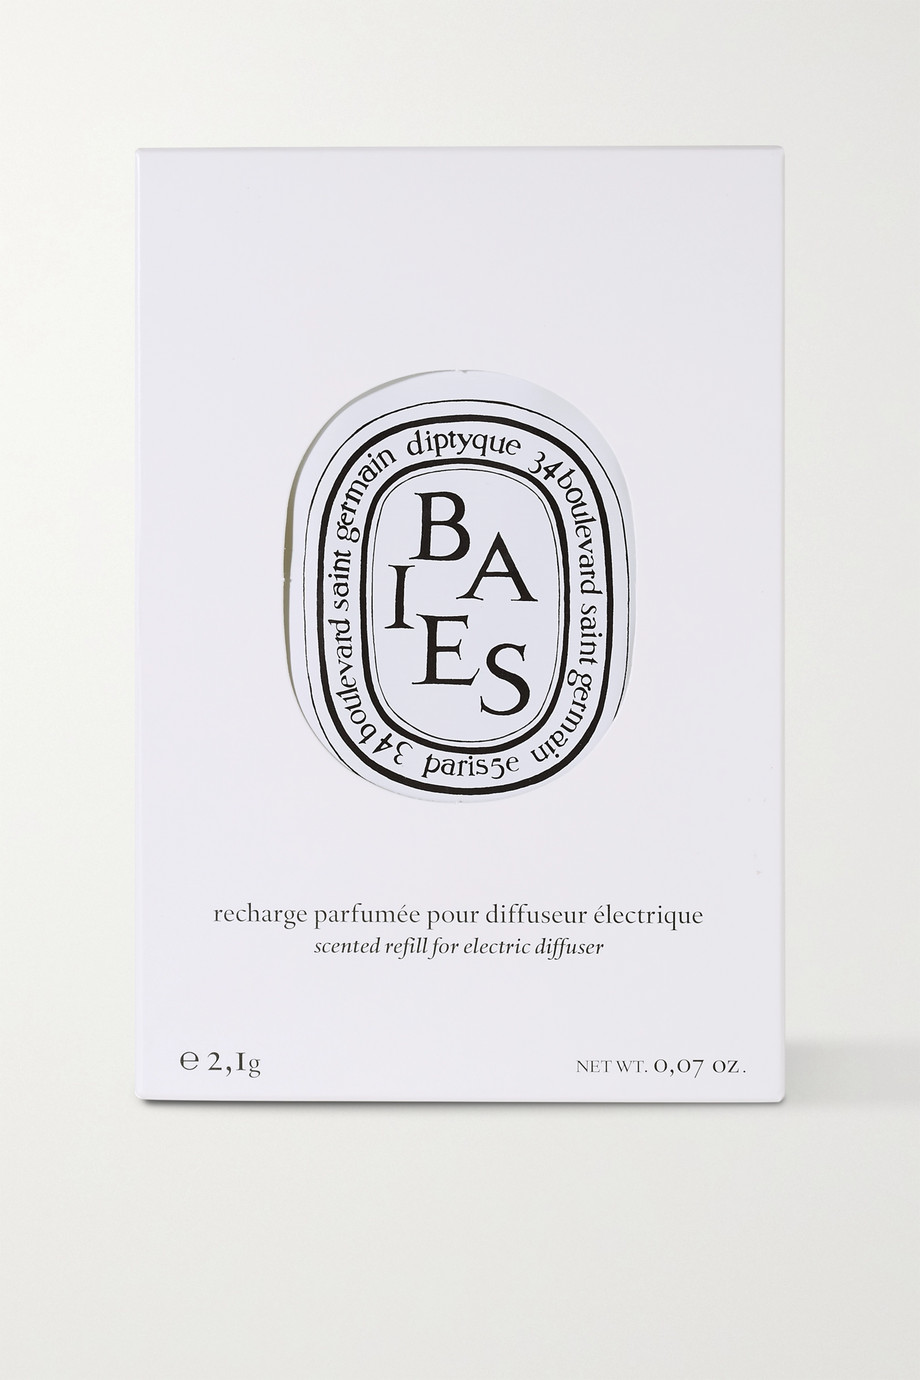 DIPTYQUE Baies Electric Diffuser Capsule